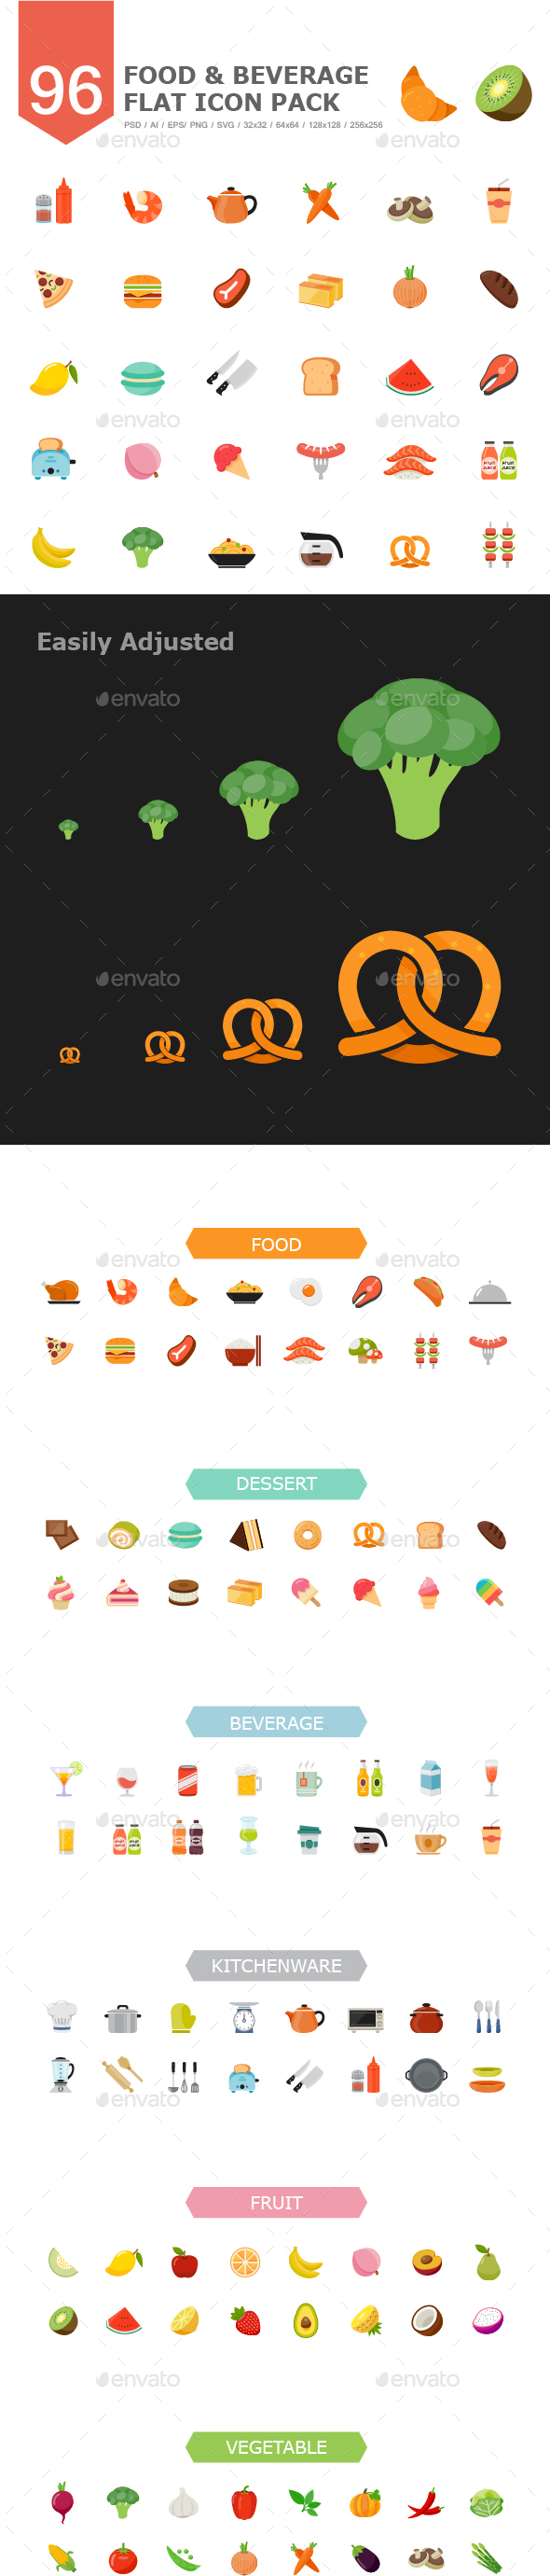 96 Food&Beverage Color Flat Icon - Food Objects